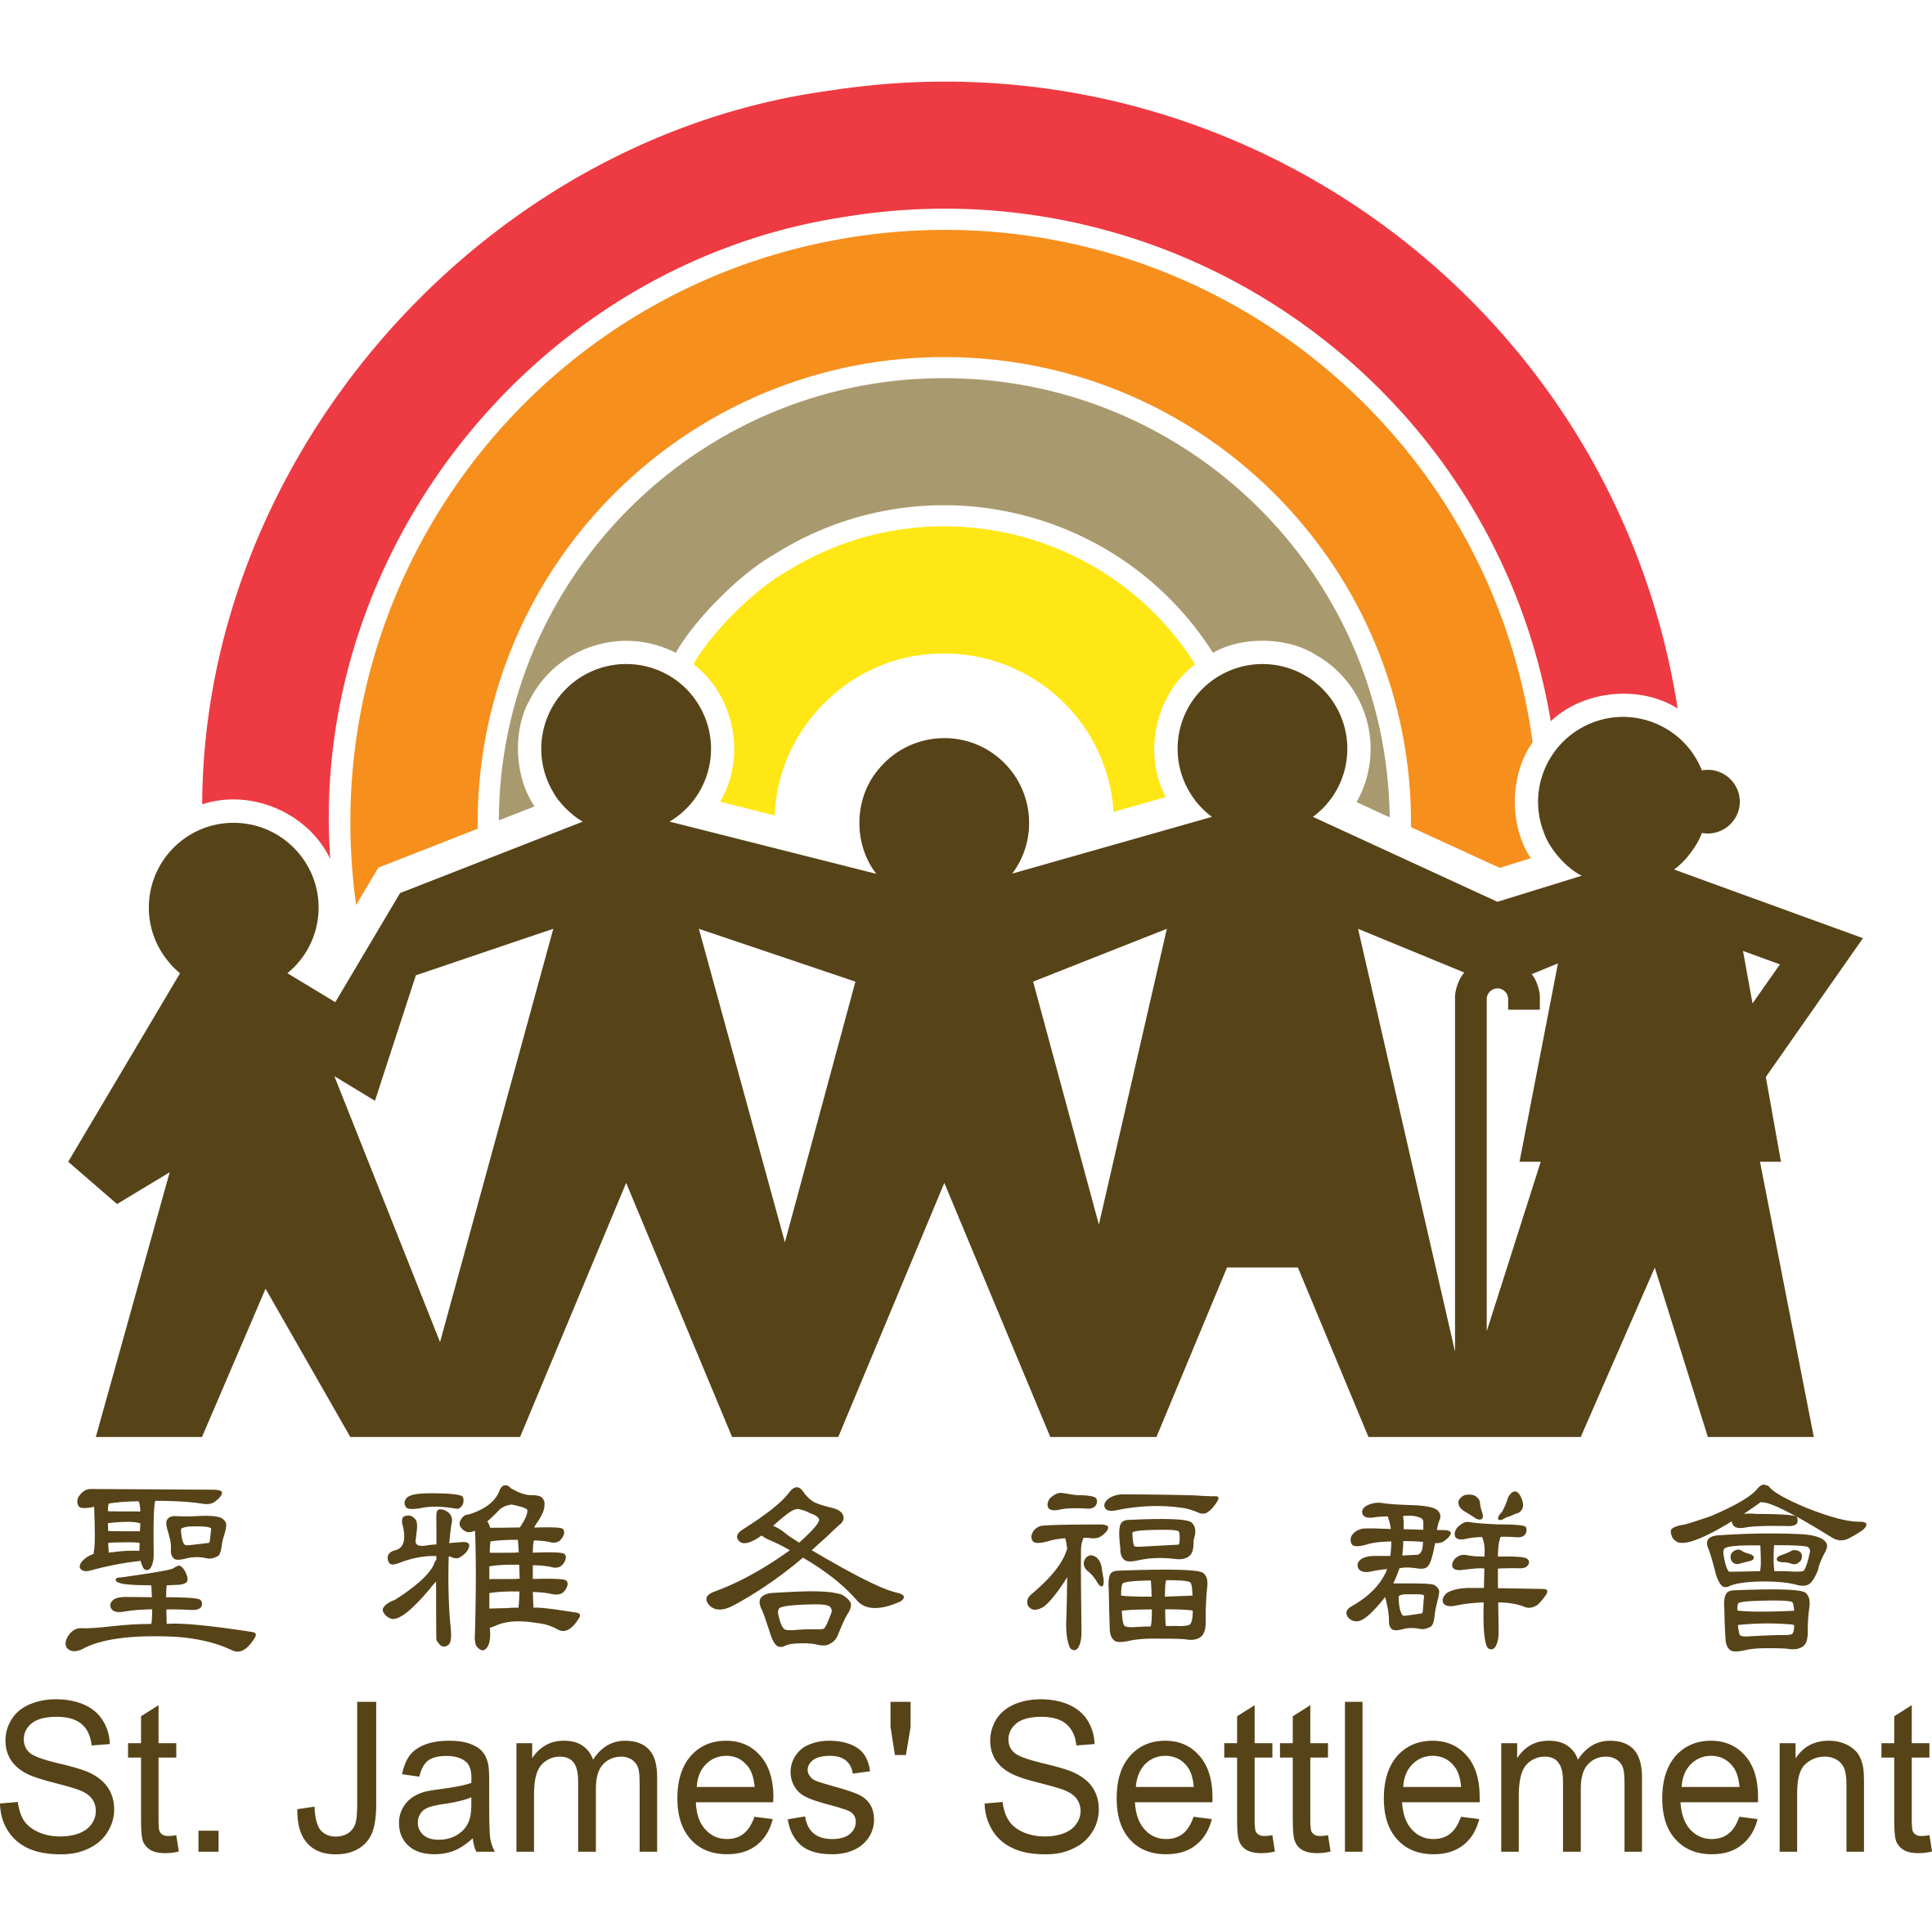 St. James' Settlement